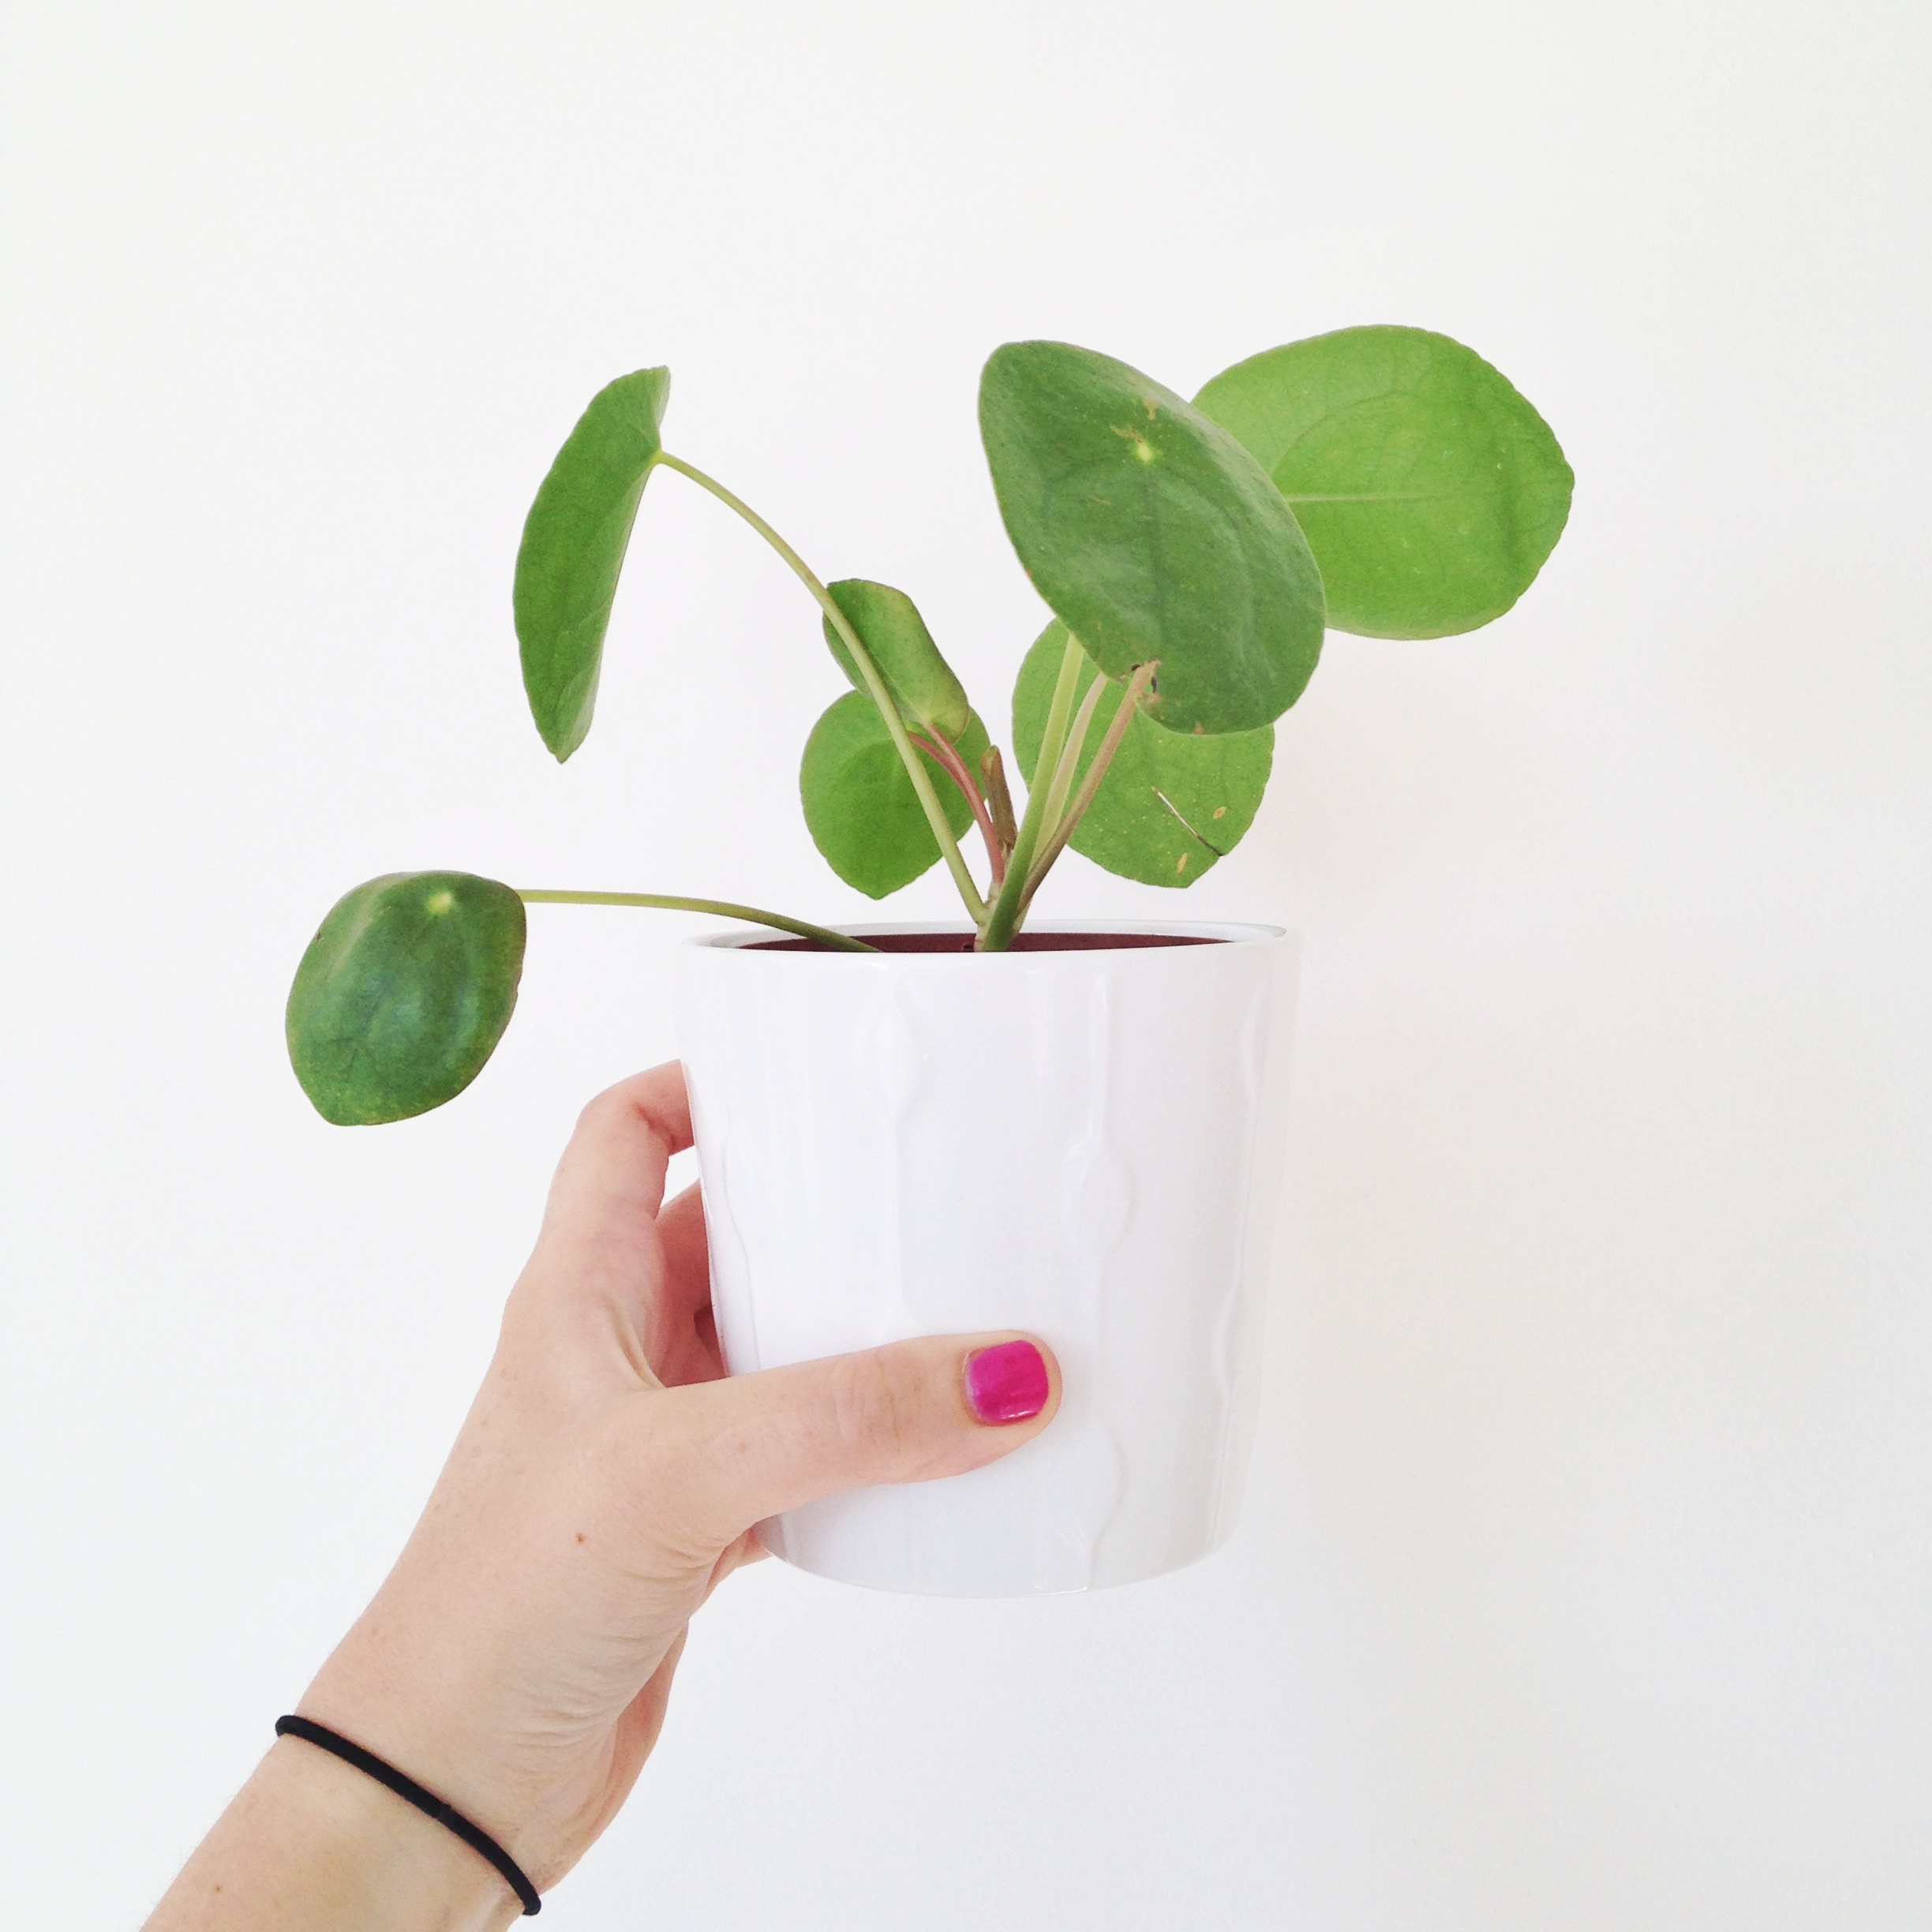 2//. this little pilea who's doubled in size since I got him a mere few weeks ago {he only had 4 leaves!!}.